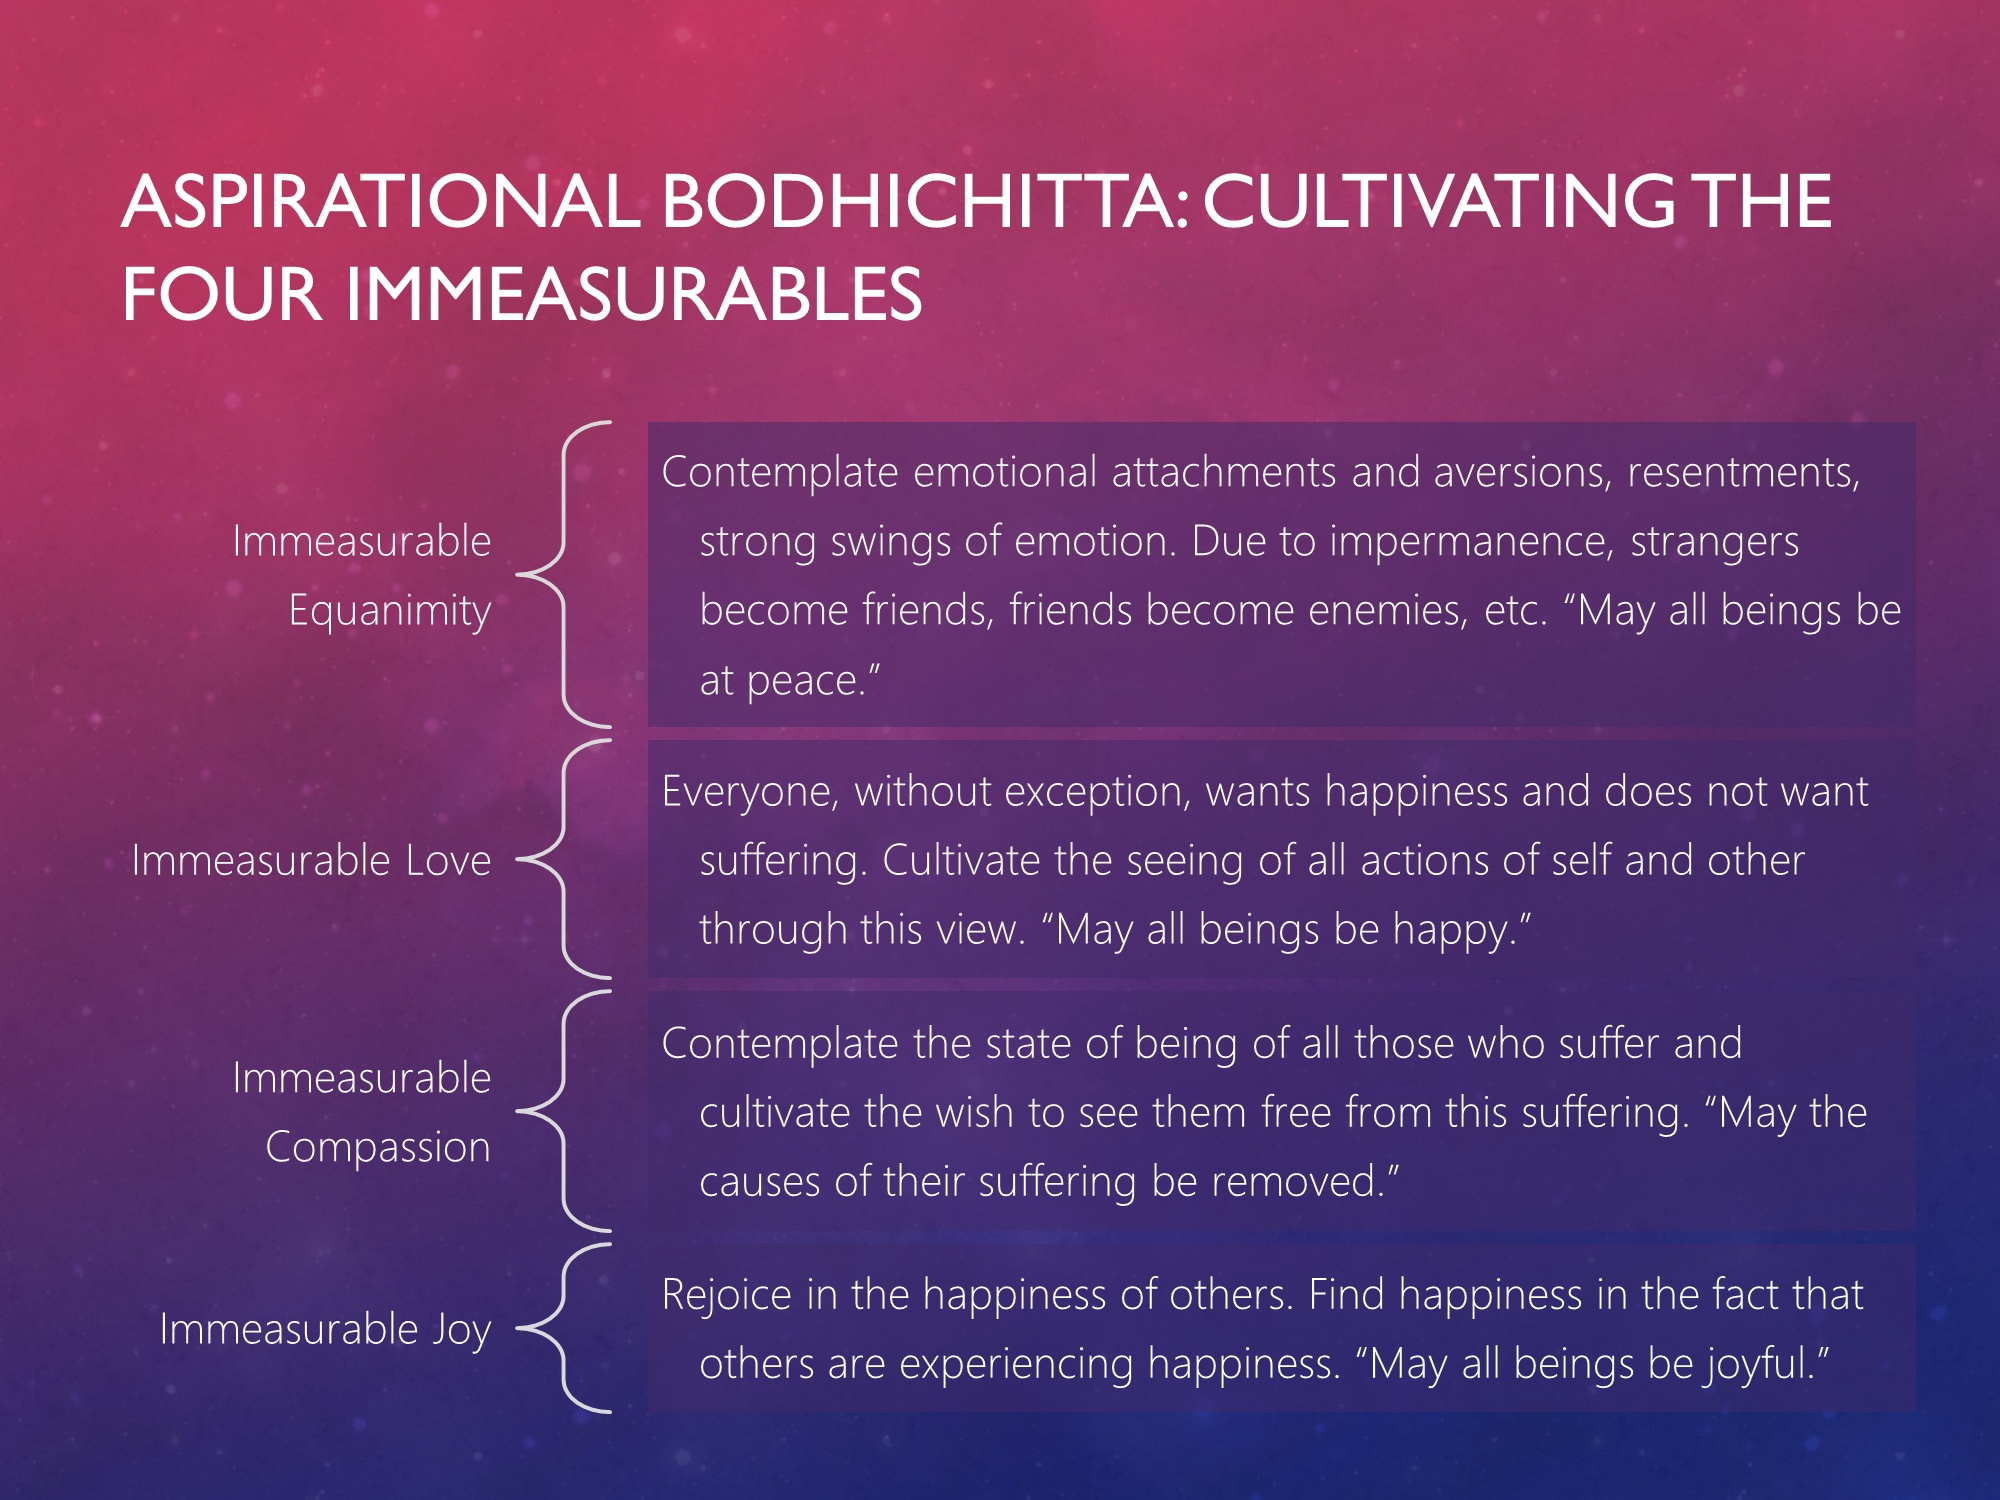 Aspirational Bodhichitta: Cultivating the four Immeasurables